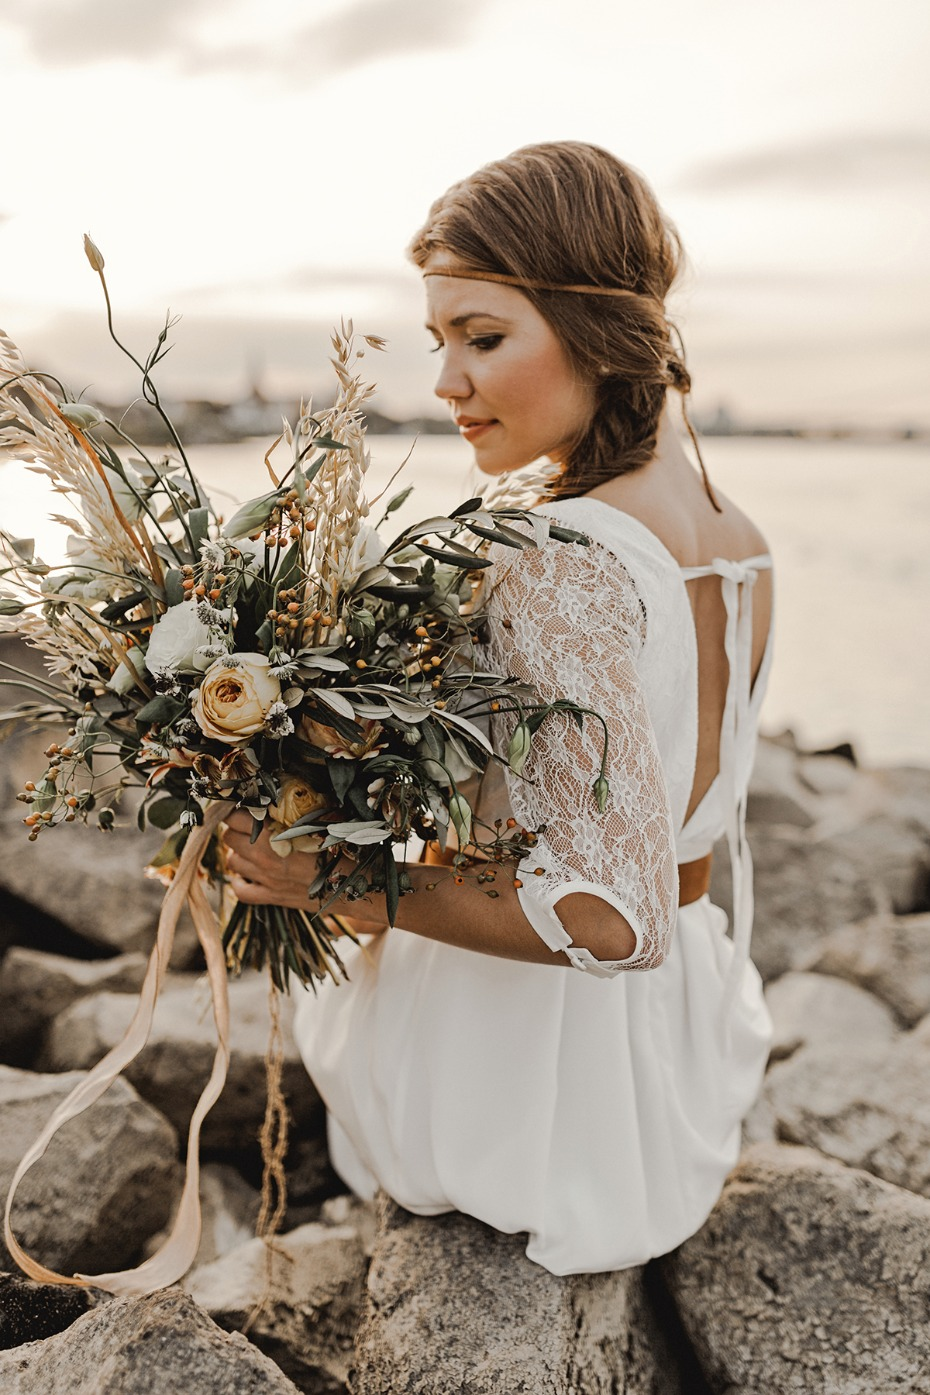 Beach elopement ideas.